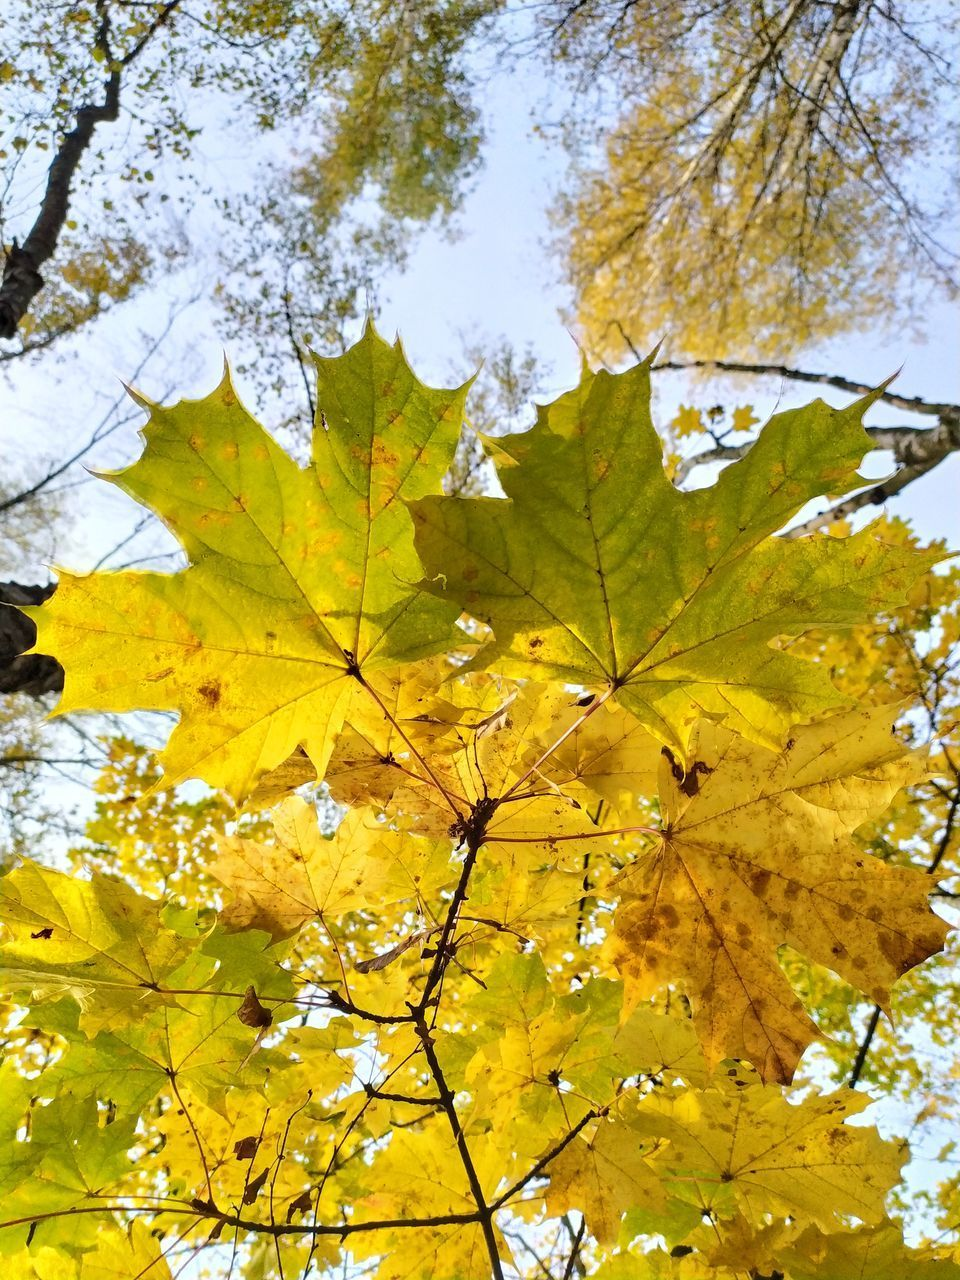 LOW ANGLE VIEW OF YELLOW MAPLE LEAVES